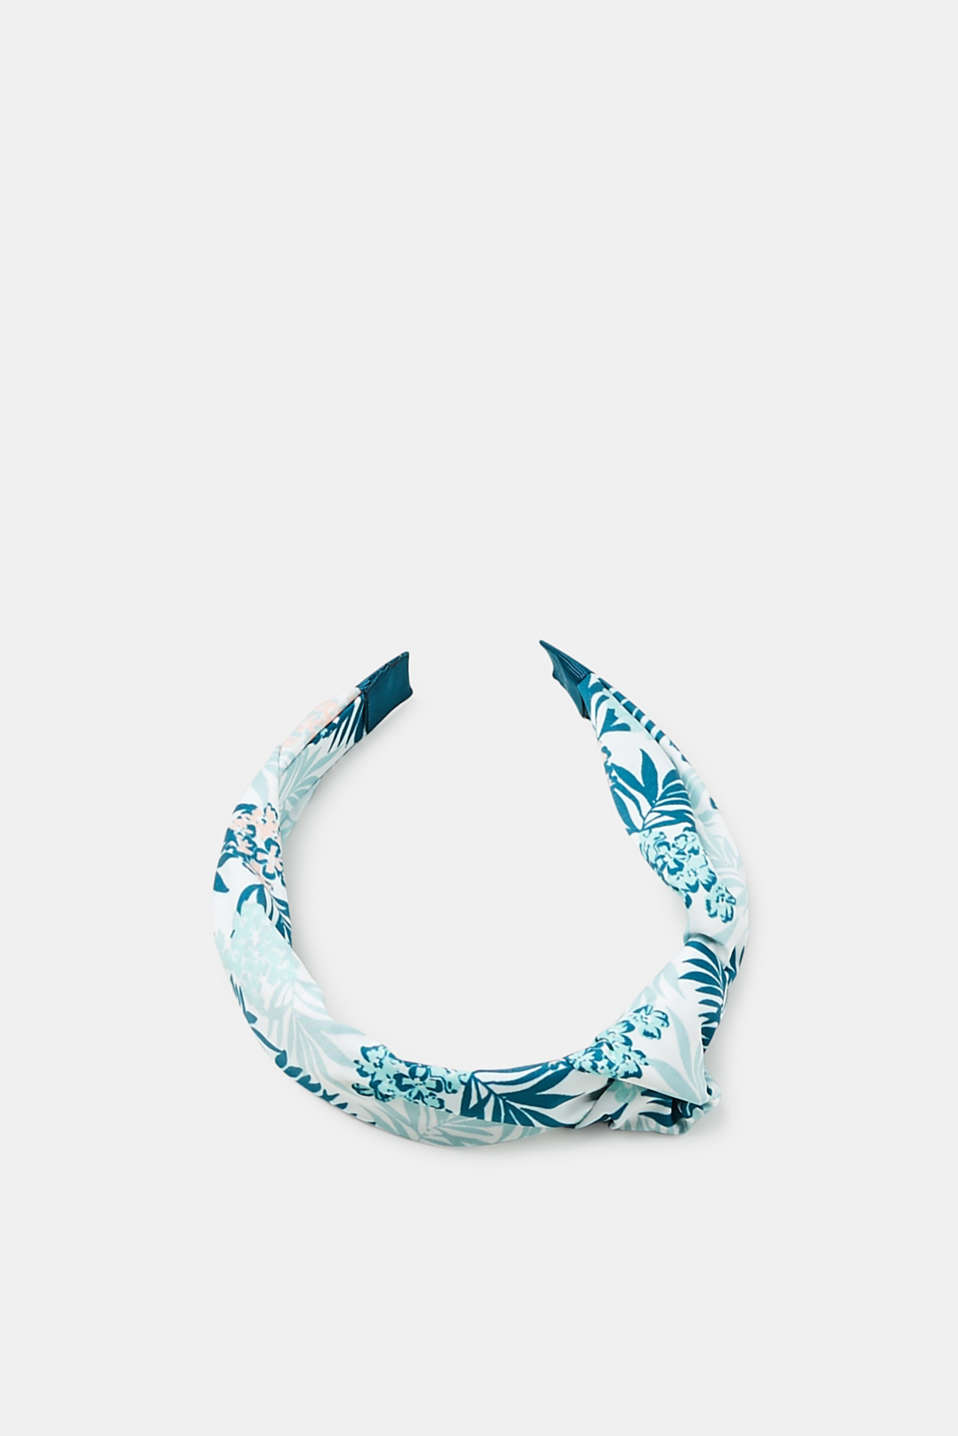 This wide hairband is a trendy accessory thanks to the summery textile overlay with a leaf and floral print.